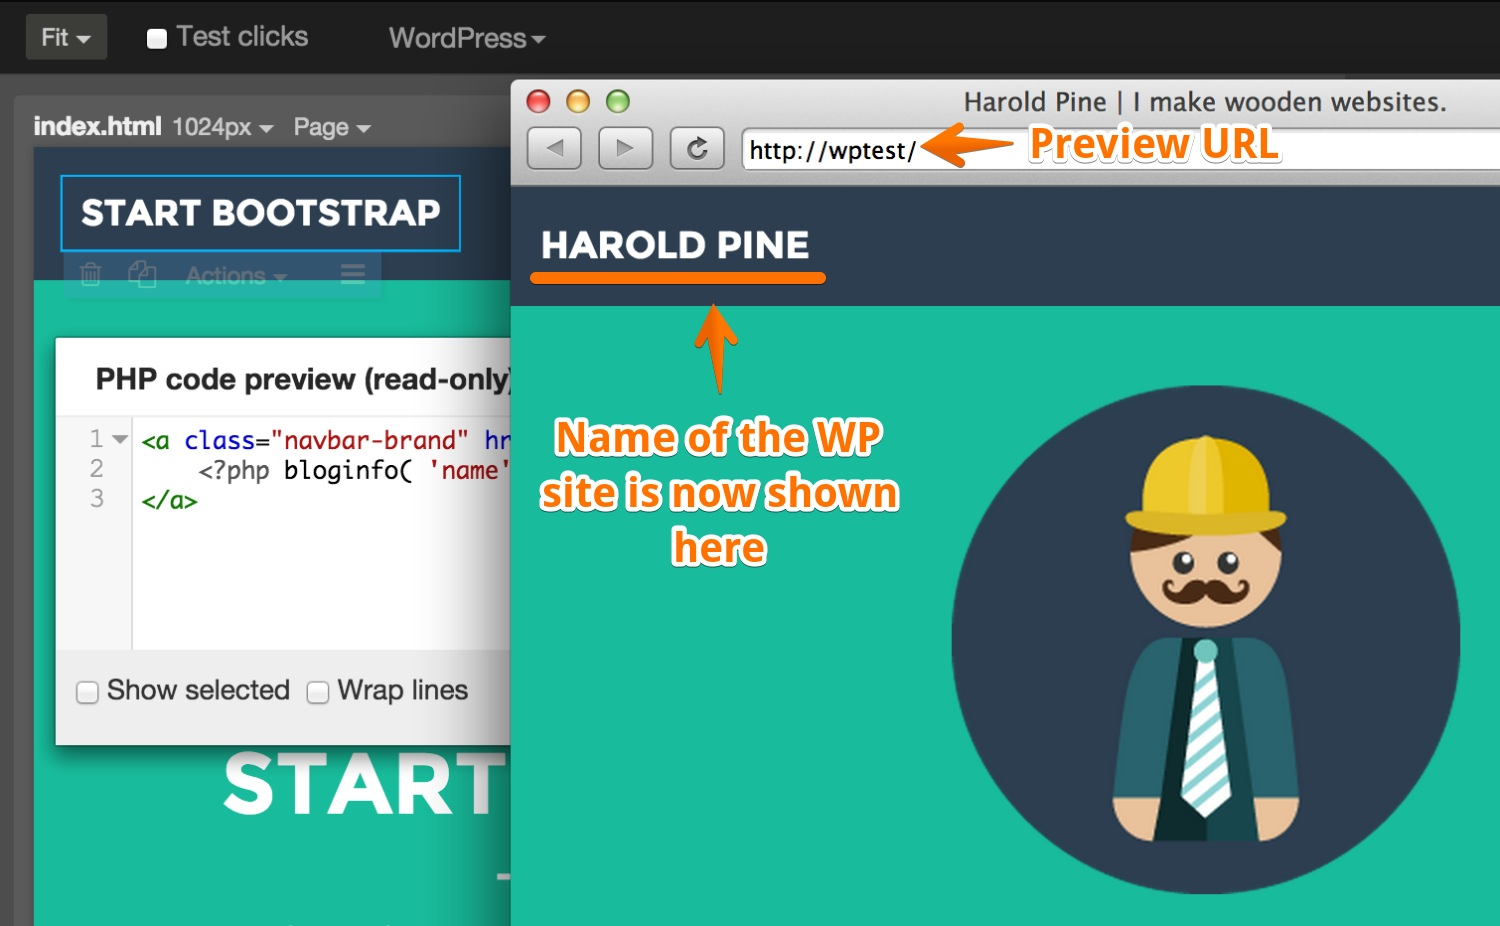 Converting HTML to WordPress | Pinegrow Web Editor